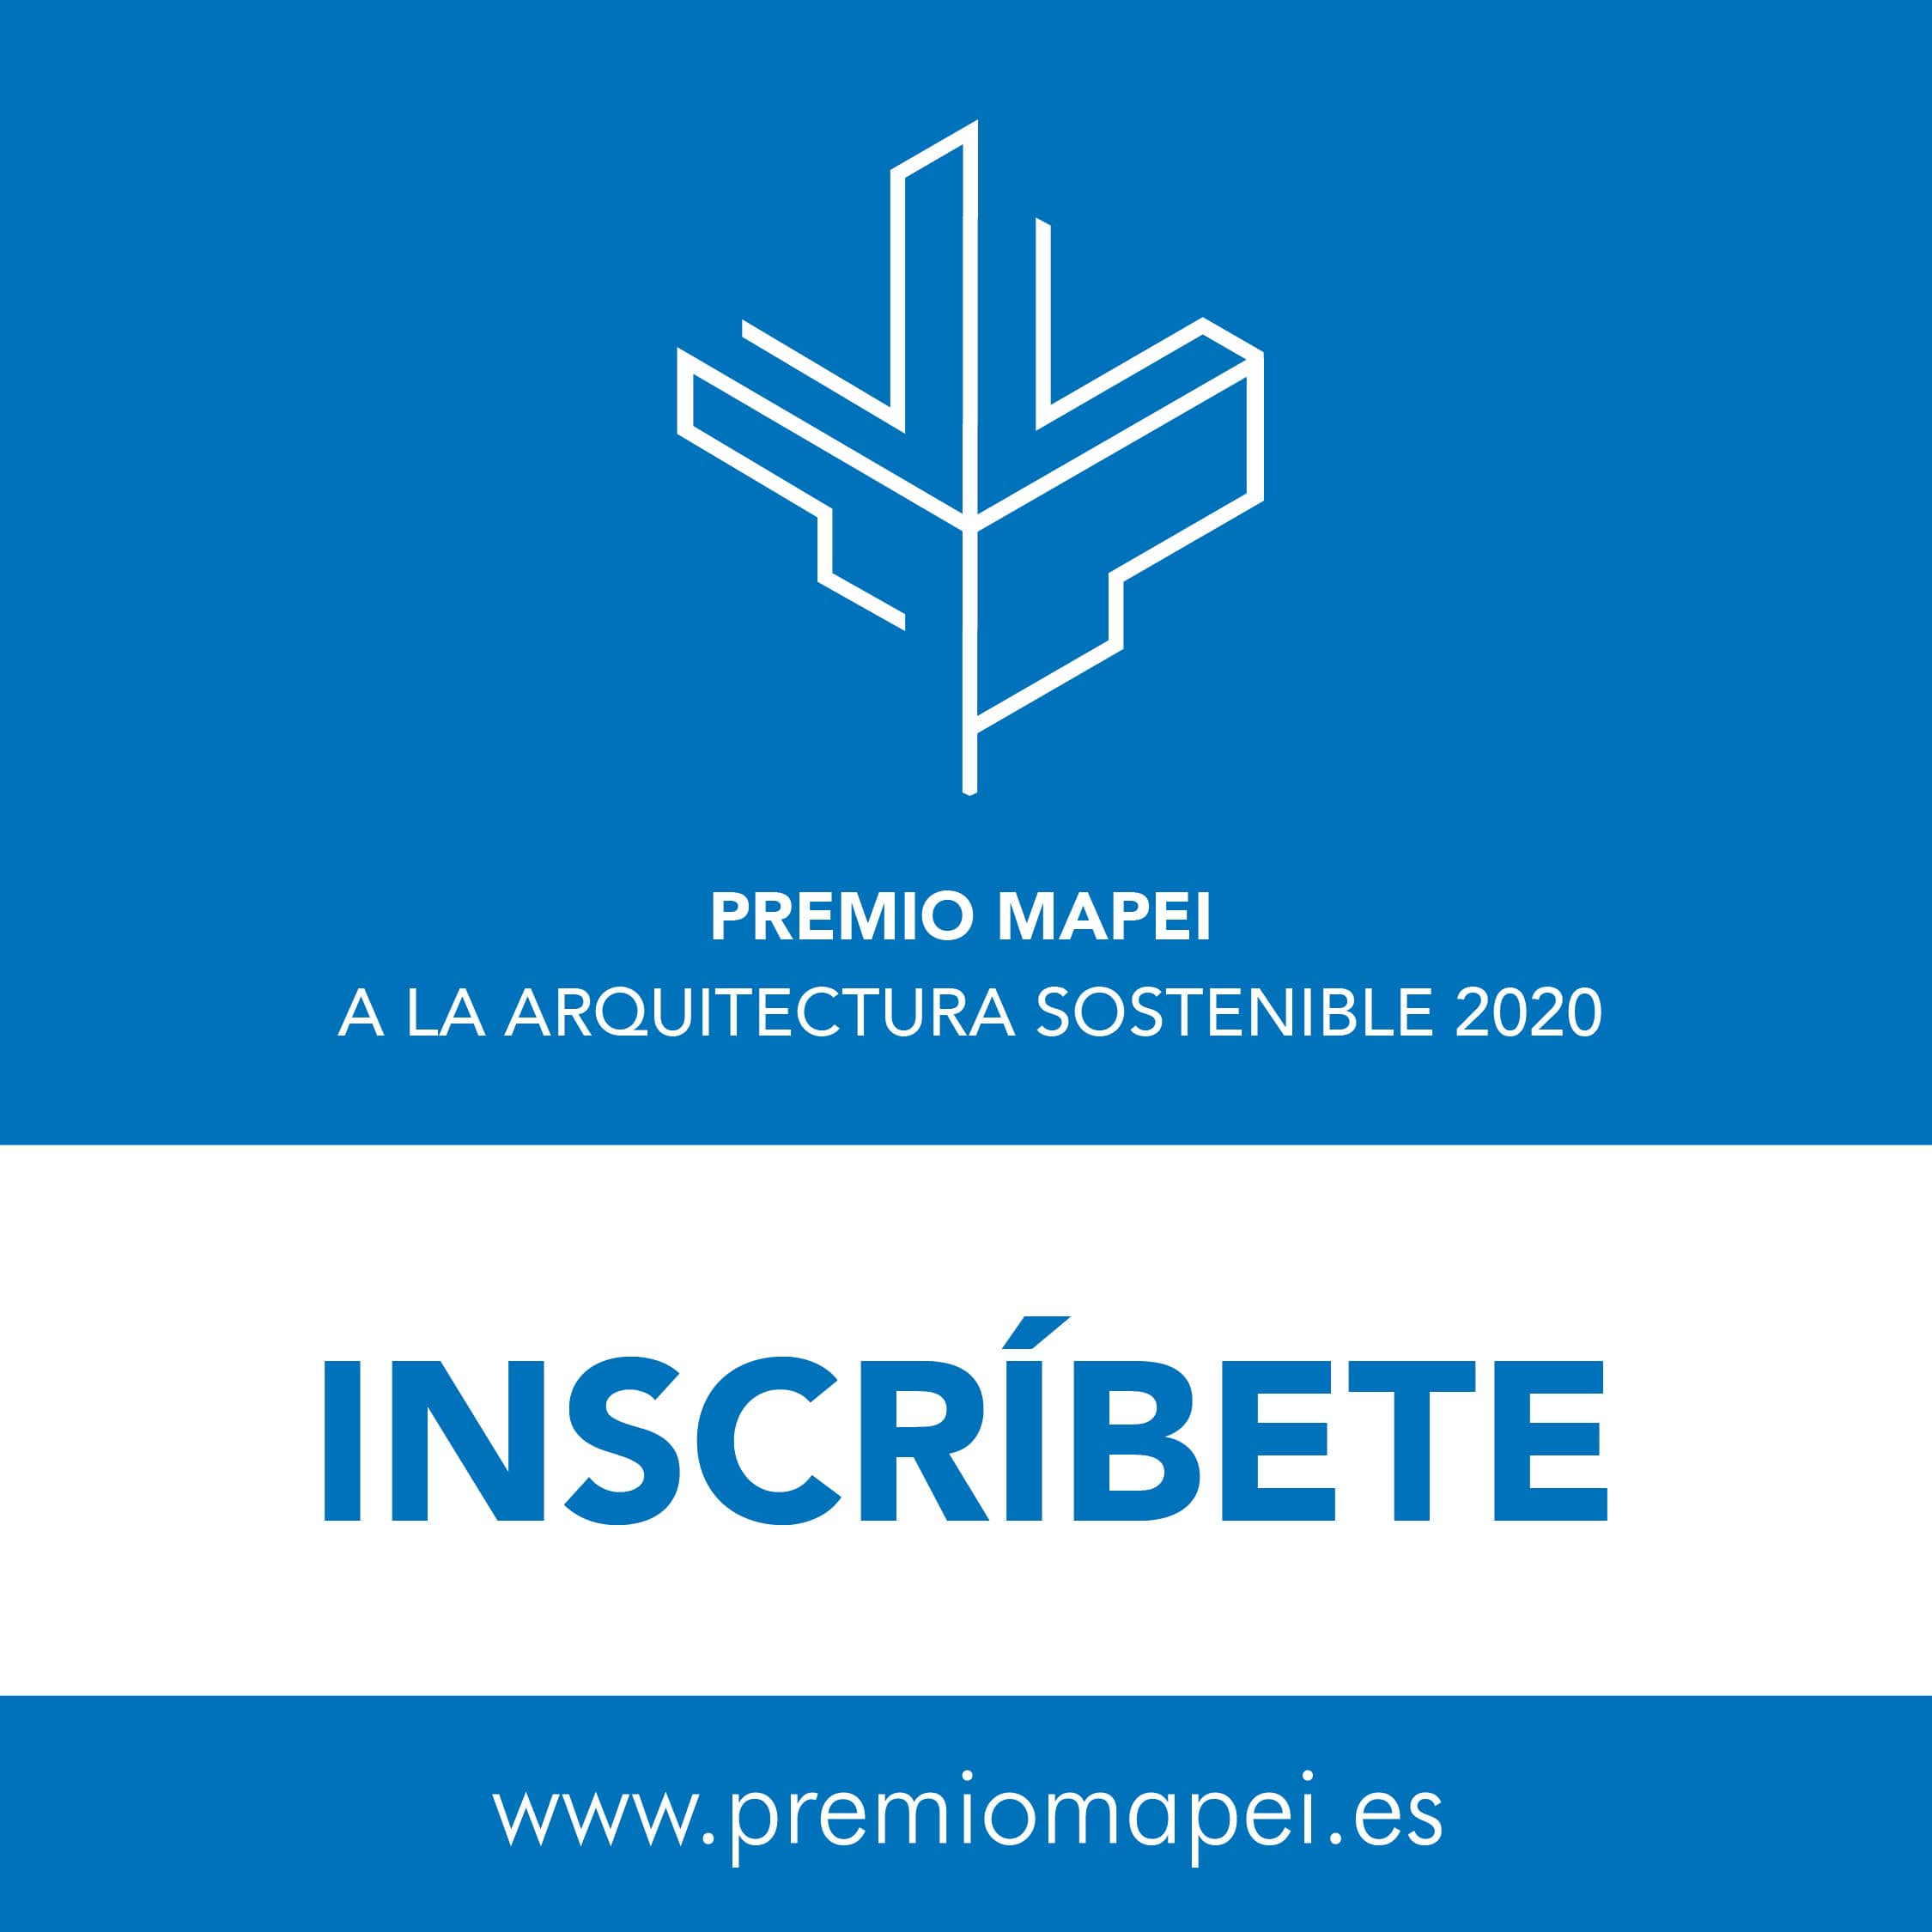 instagram_foto-inscribete-pm